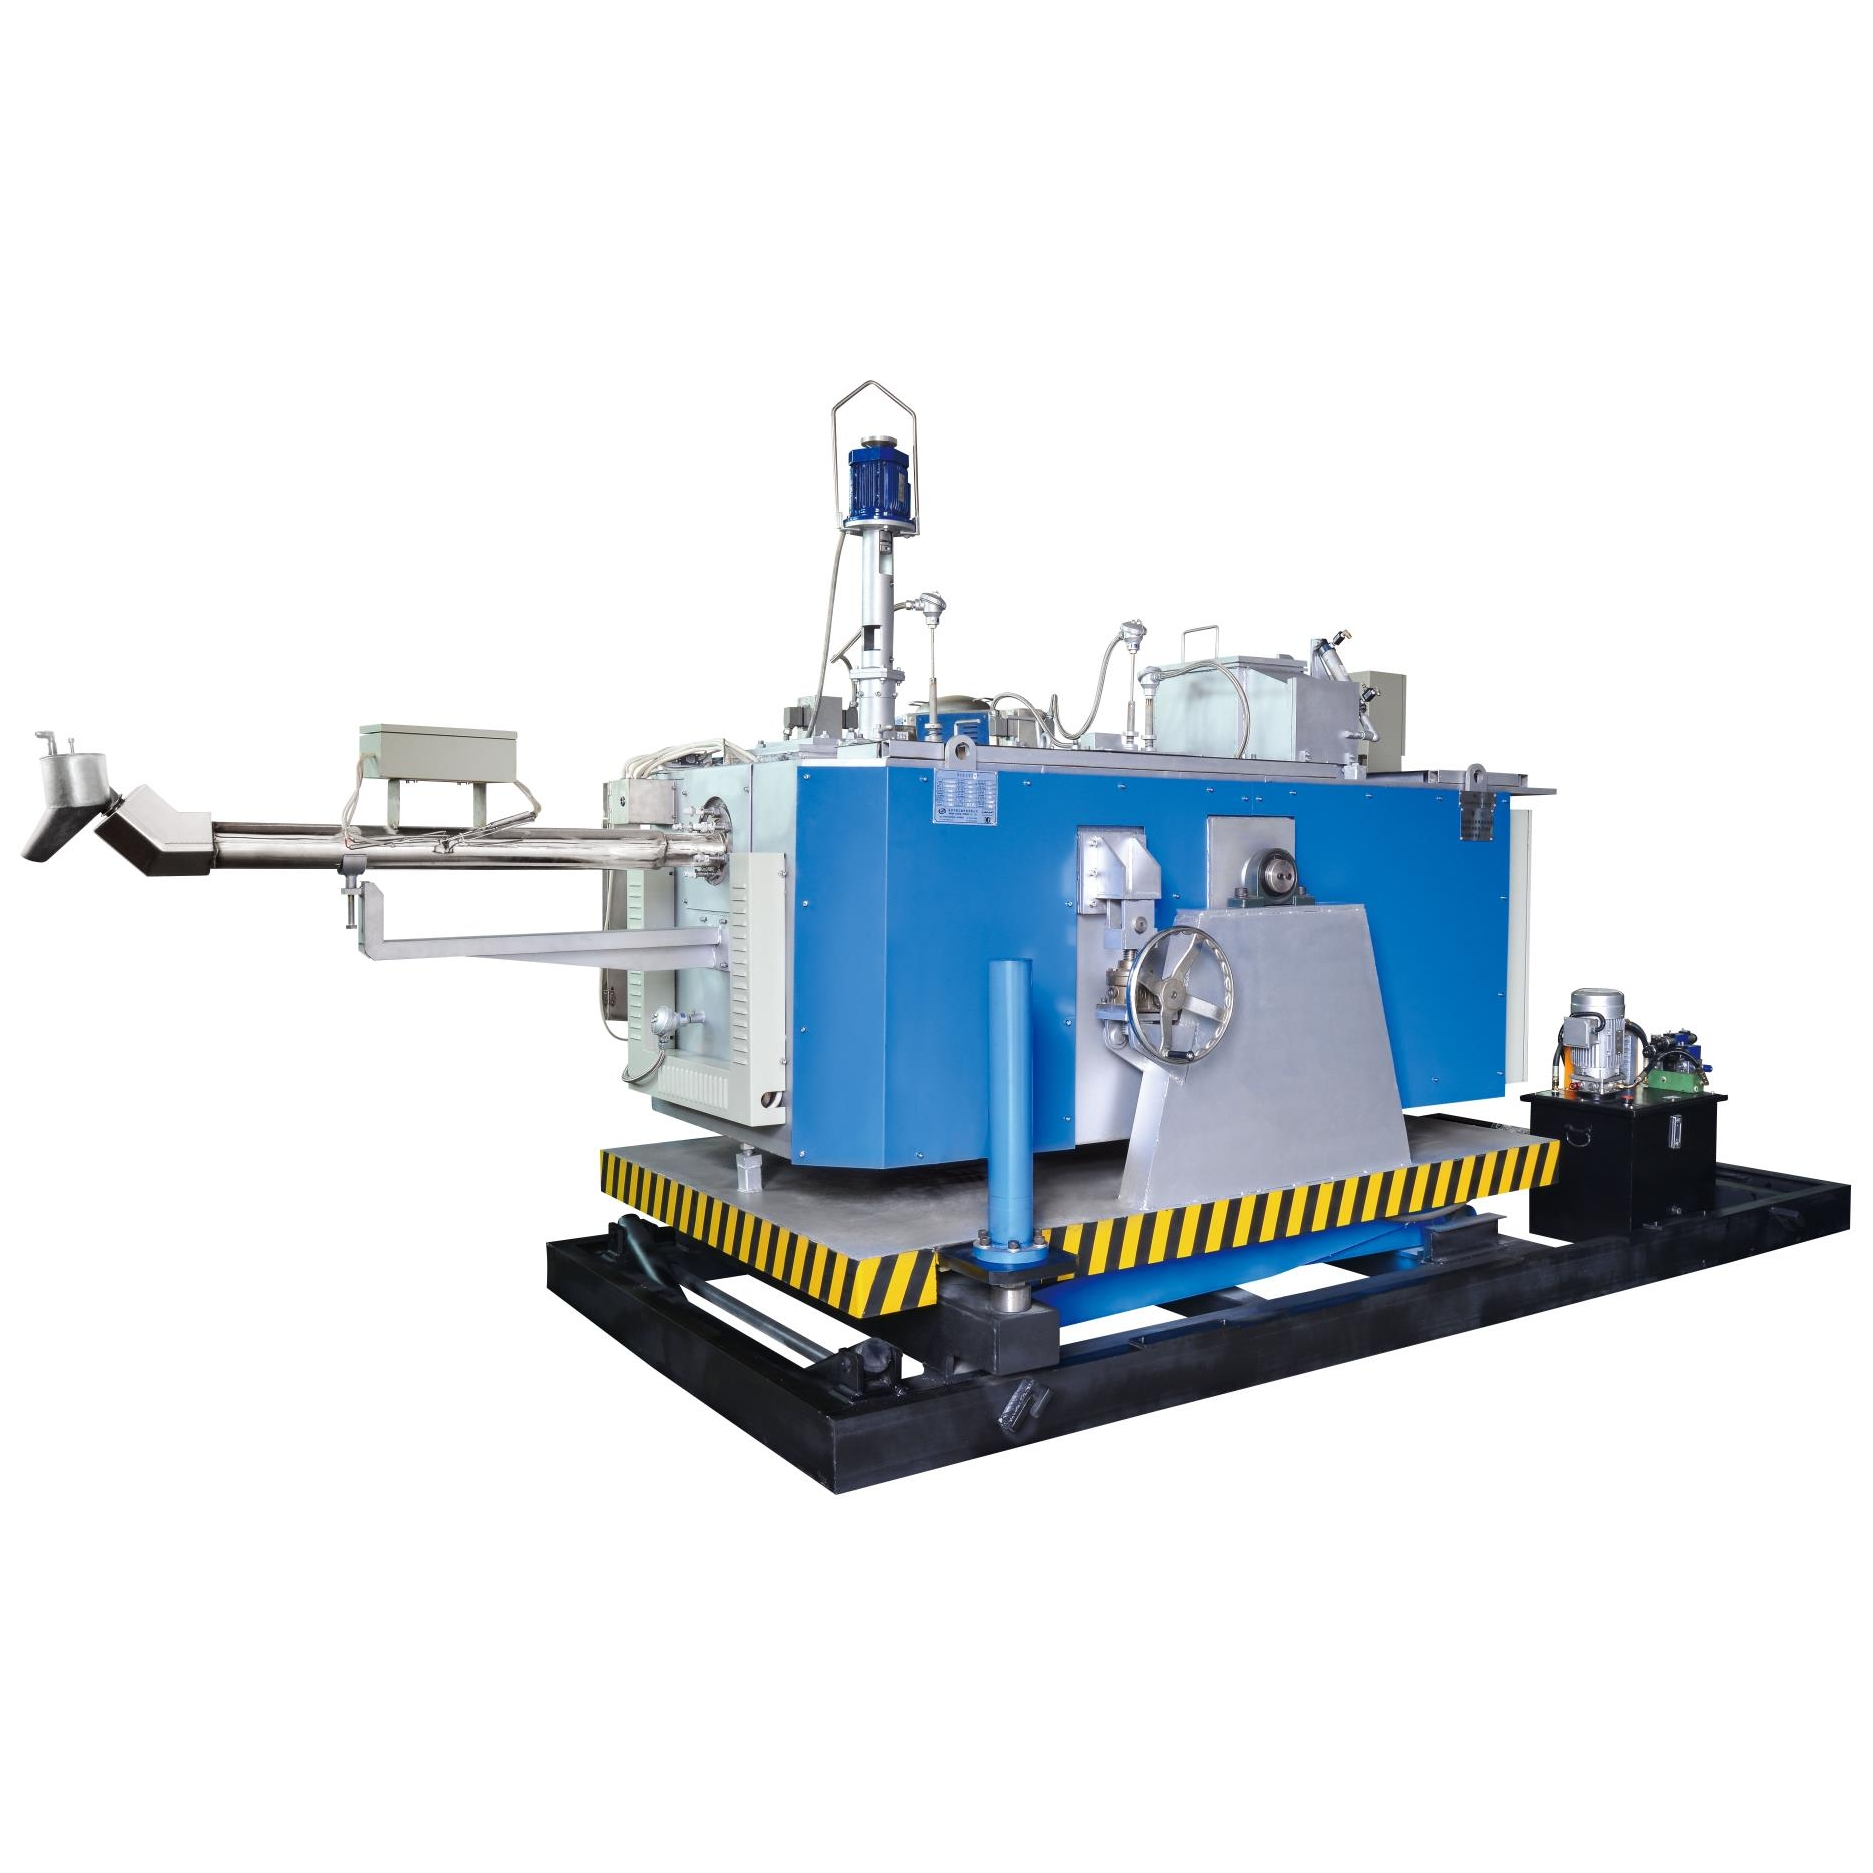 Electrical Magnesium Alloy Dosing Furnace 100kg/h